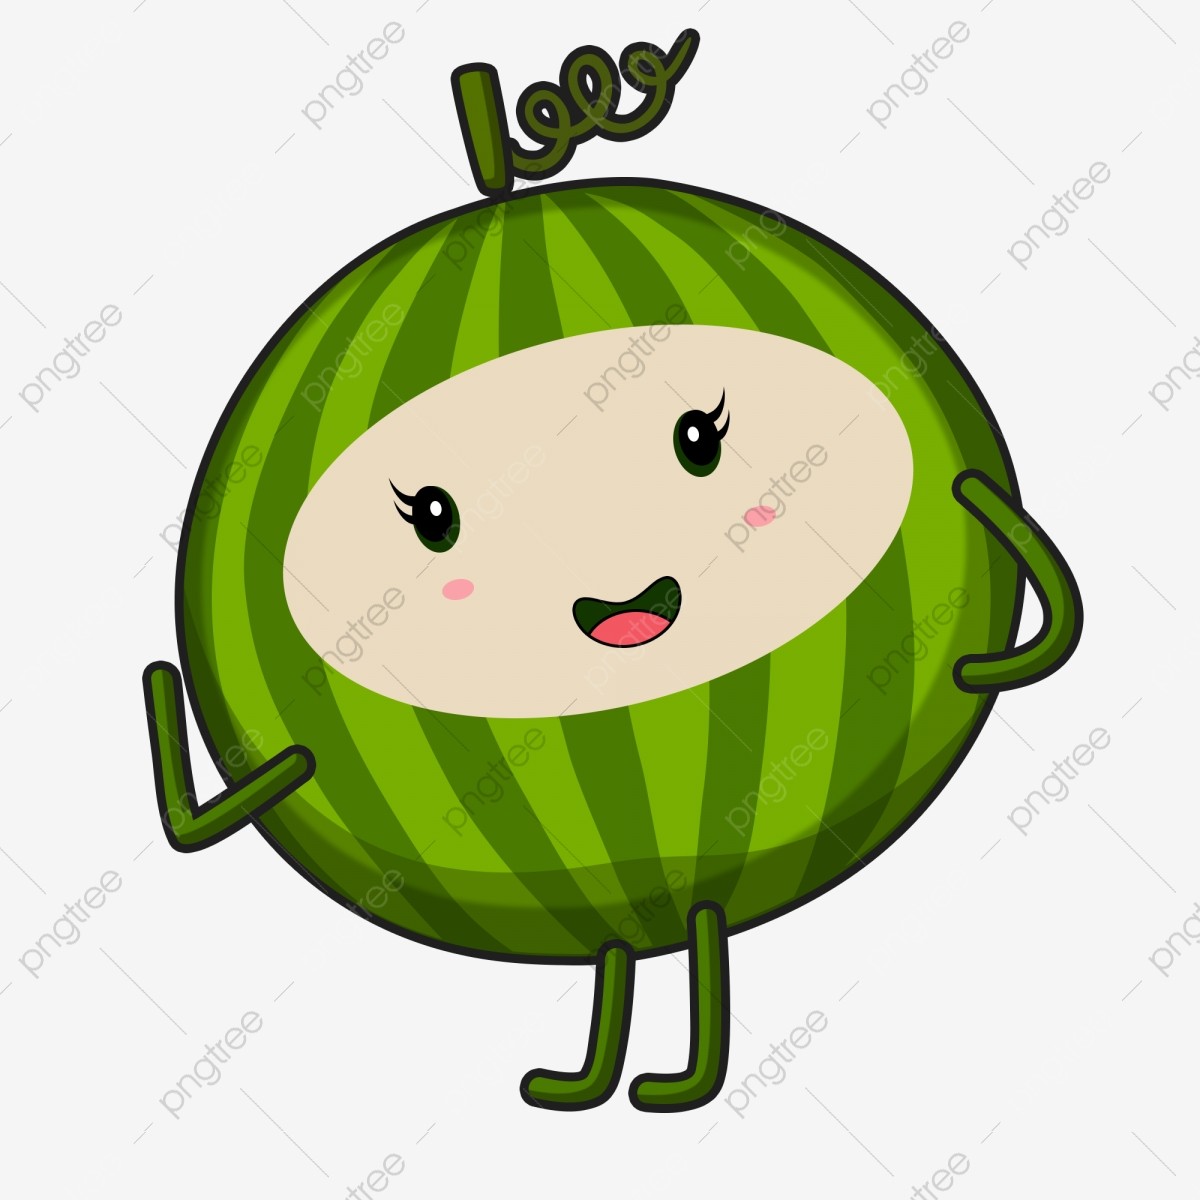 Cartoon summer cold drink. Watermelon clipart baby